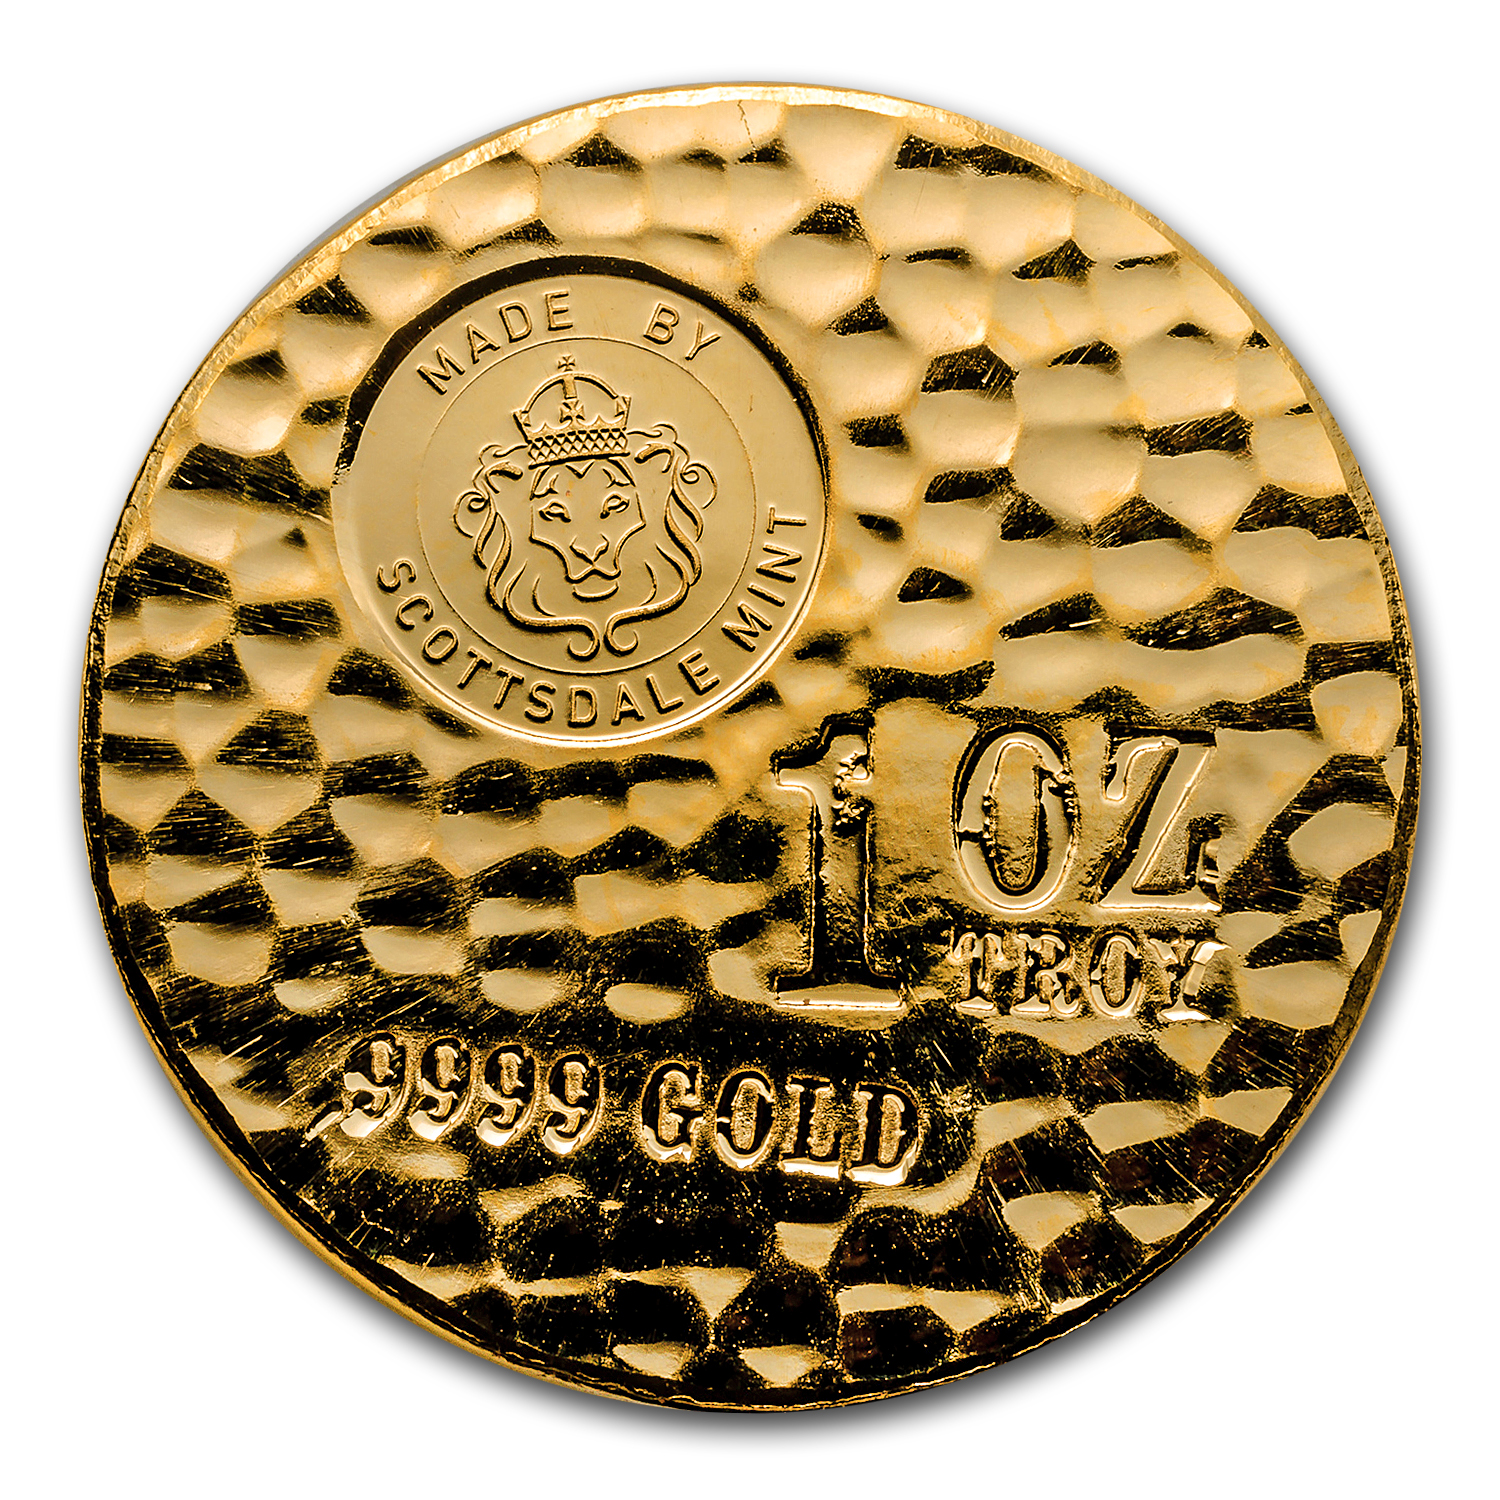 1 oz Gold Round - Scottsdale Tombstone Hammered Gold Piece